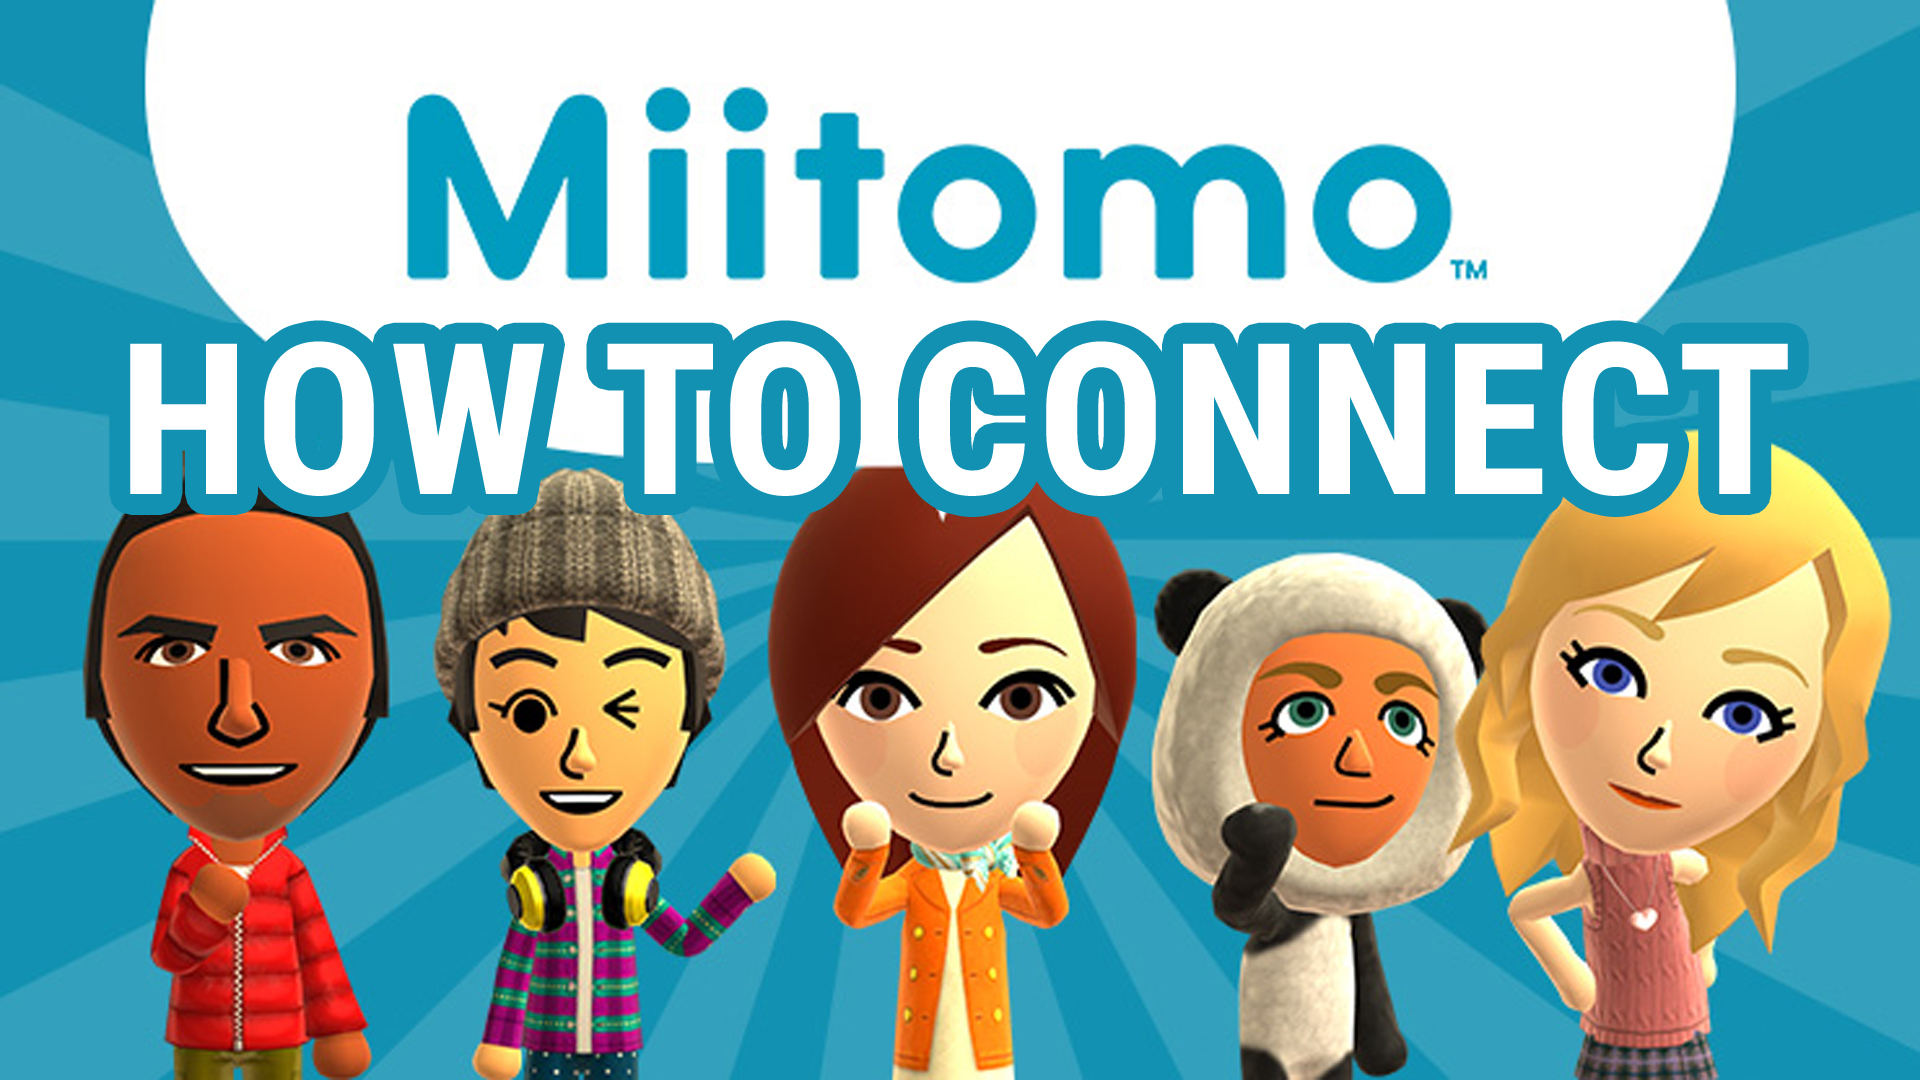 How to get started in Nintendo's Miitomo